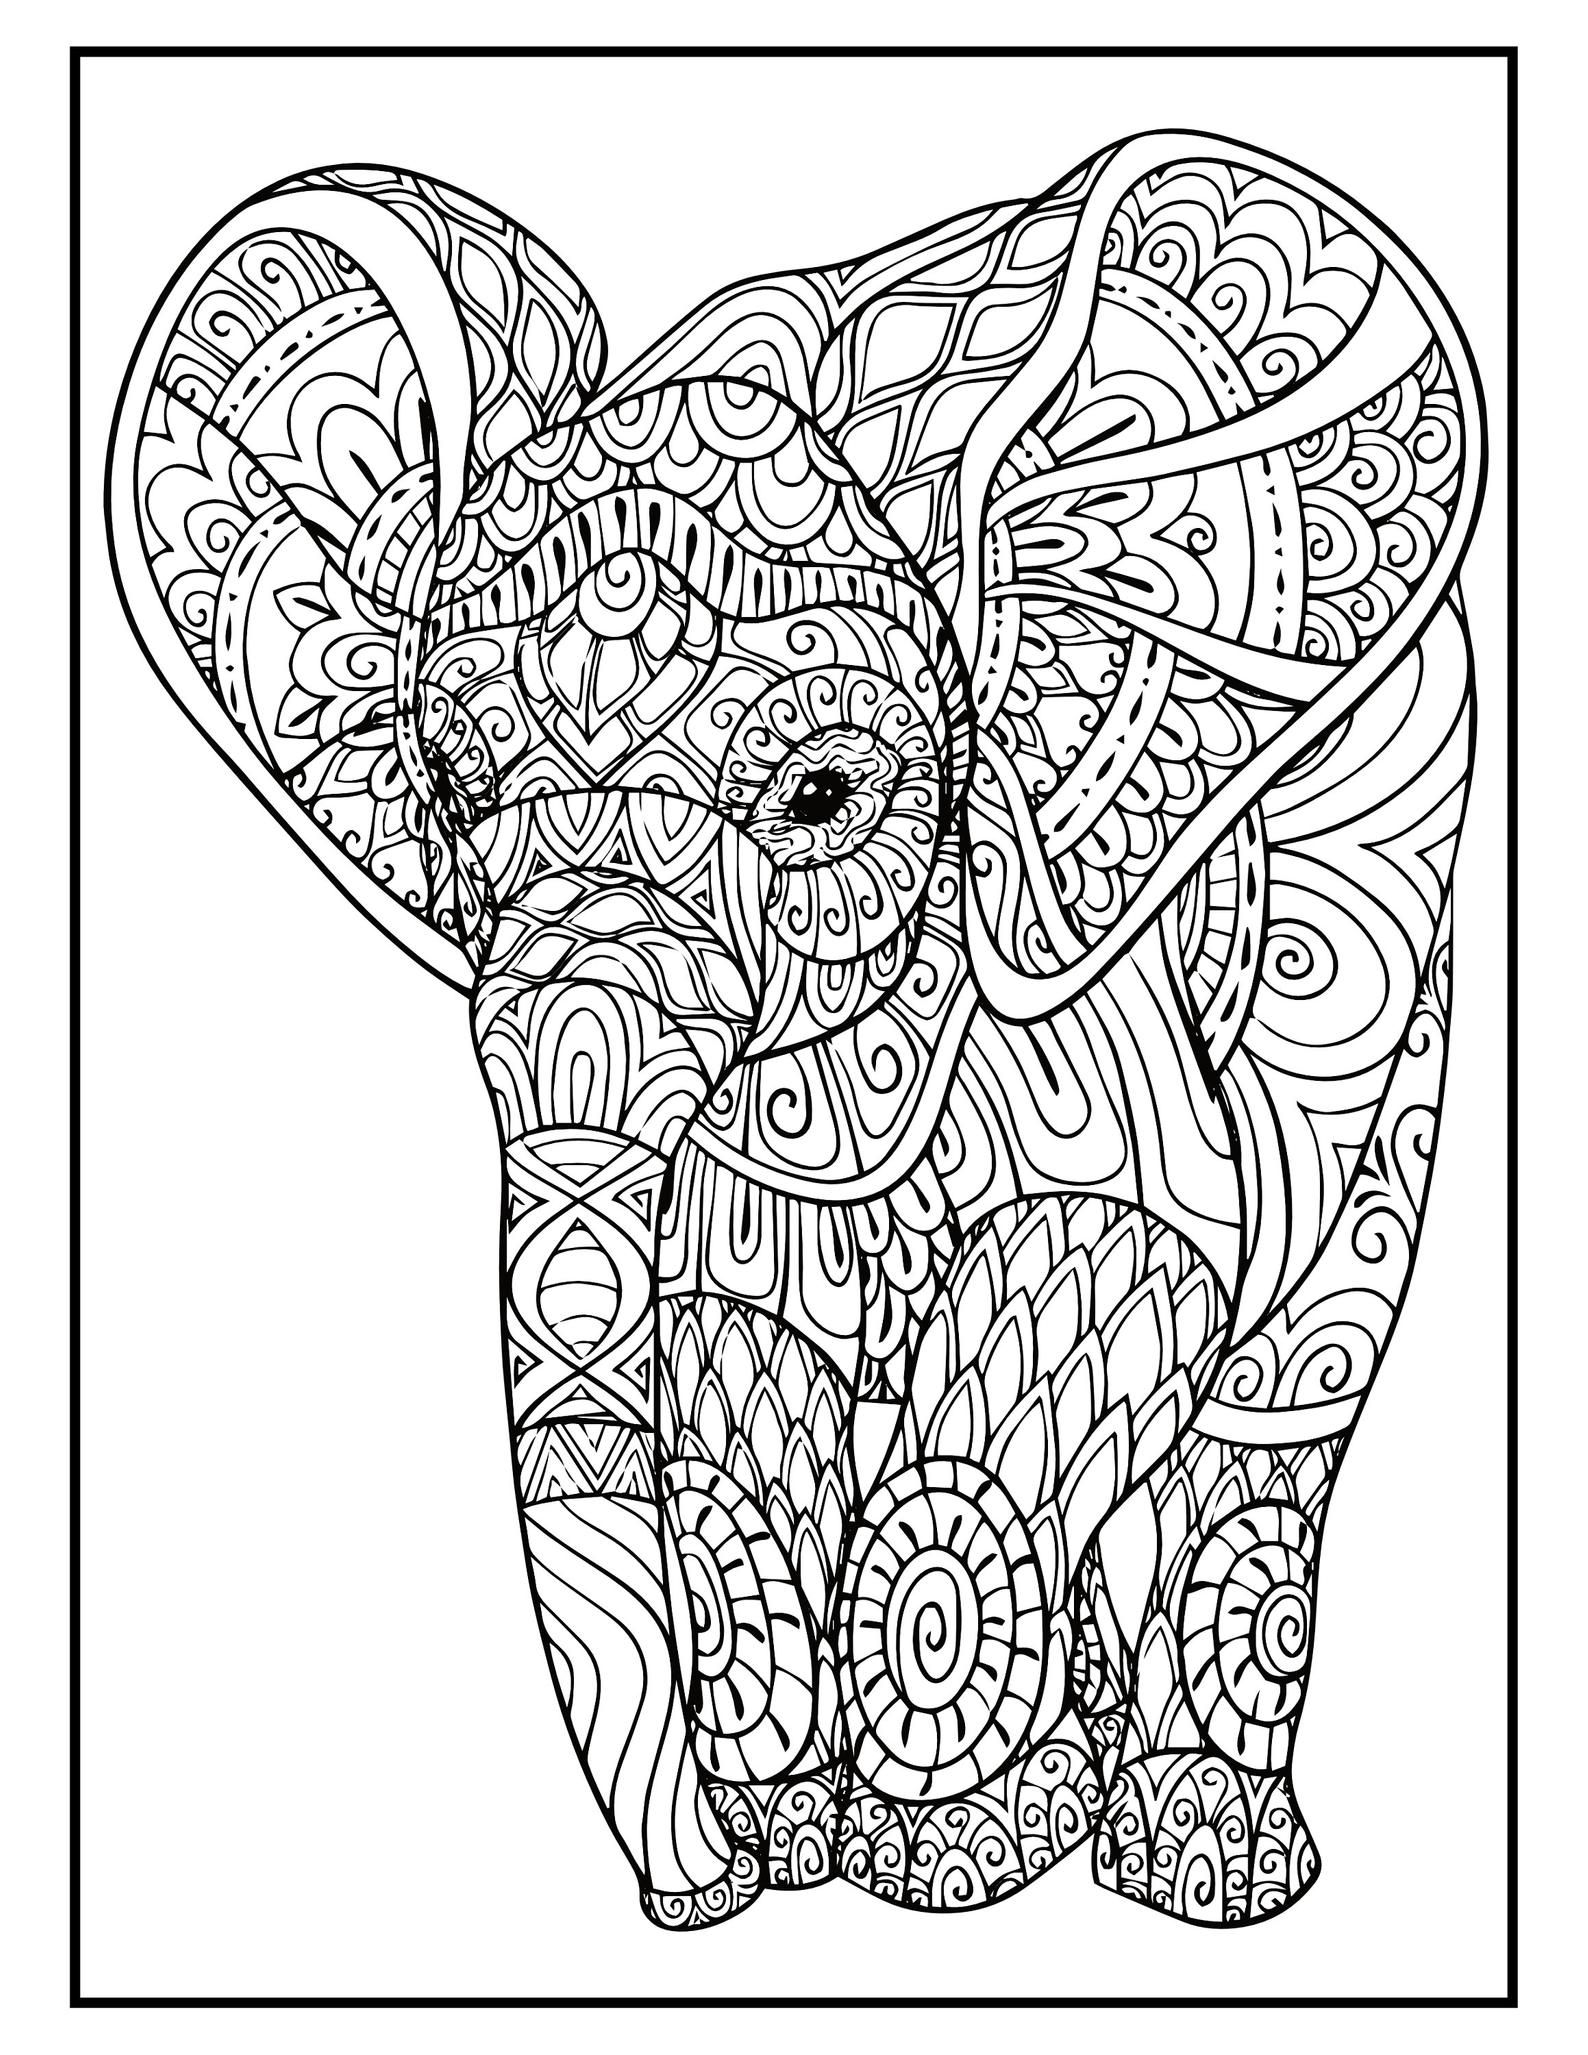 Elephant Mandala Coloring Pages 50 Page Elephant Coloring Book For Adults And Kids Printable In 2021 Elephant Coloring Page Mandala Coloring Mandala Coloring Pages [ 2055 x 1588 Pixel ]